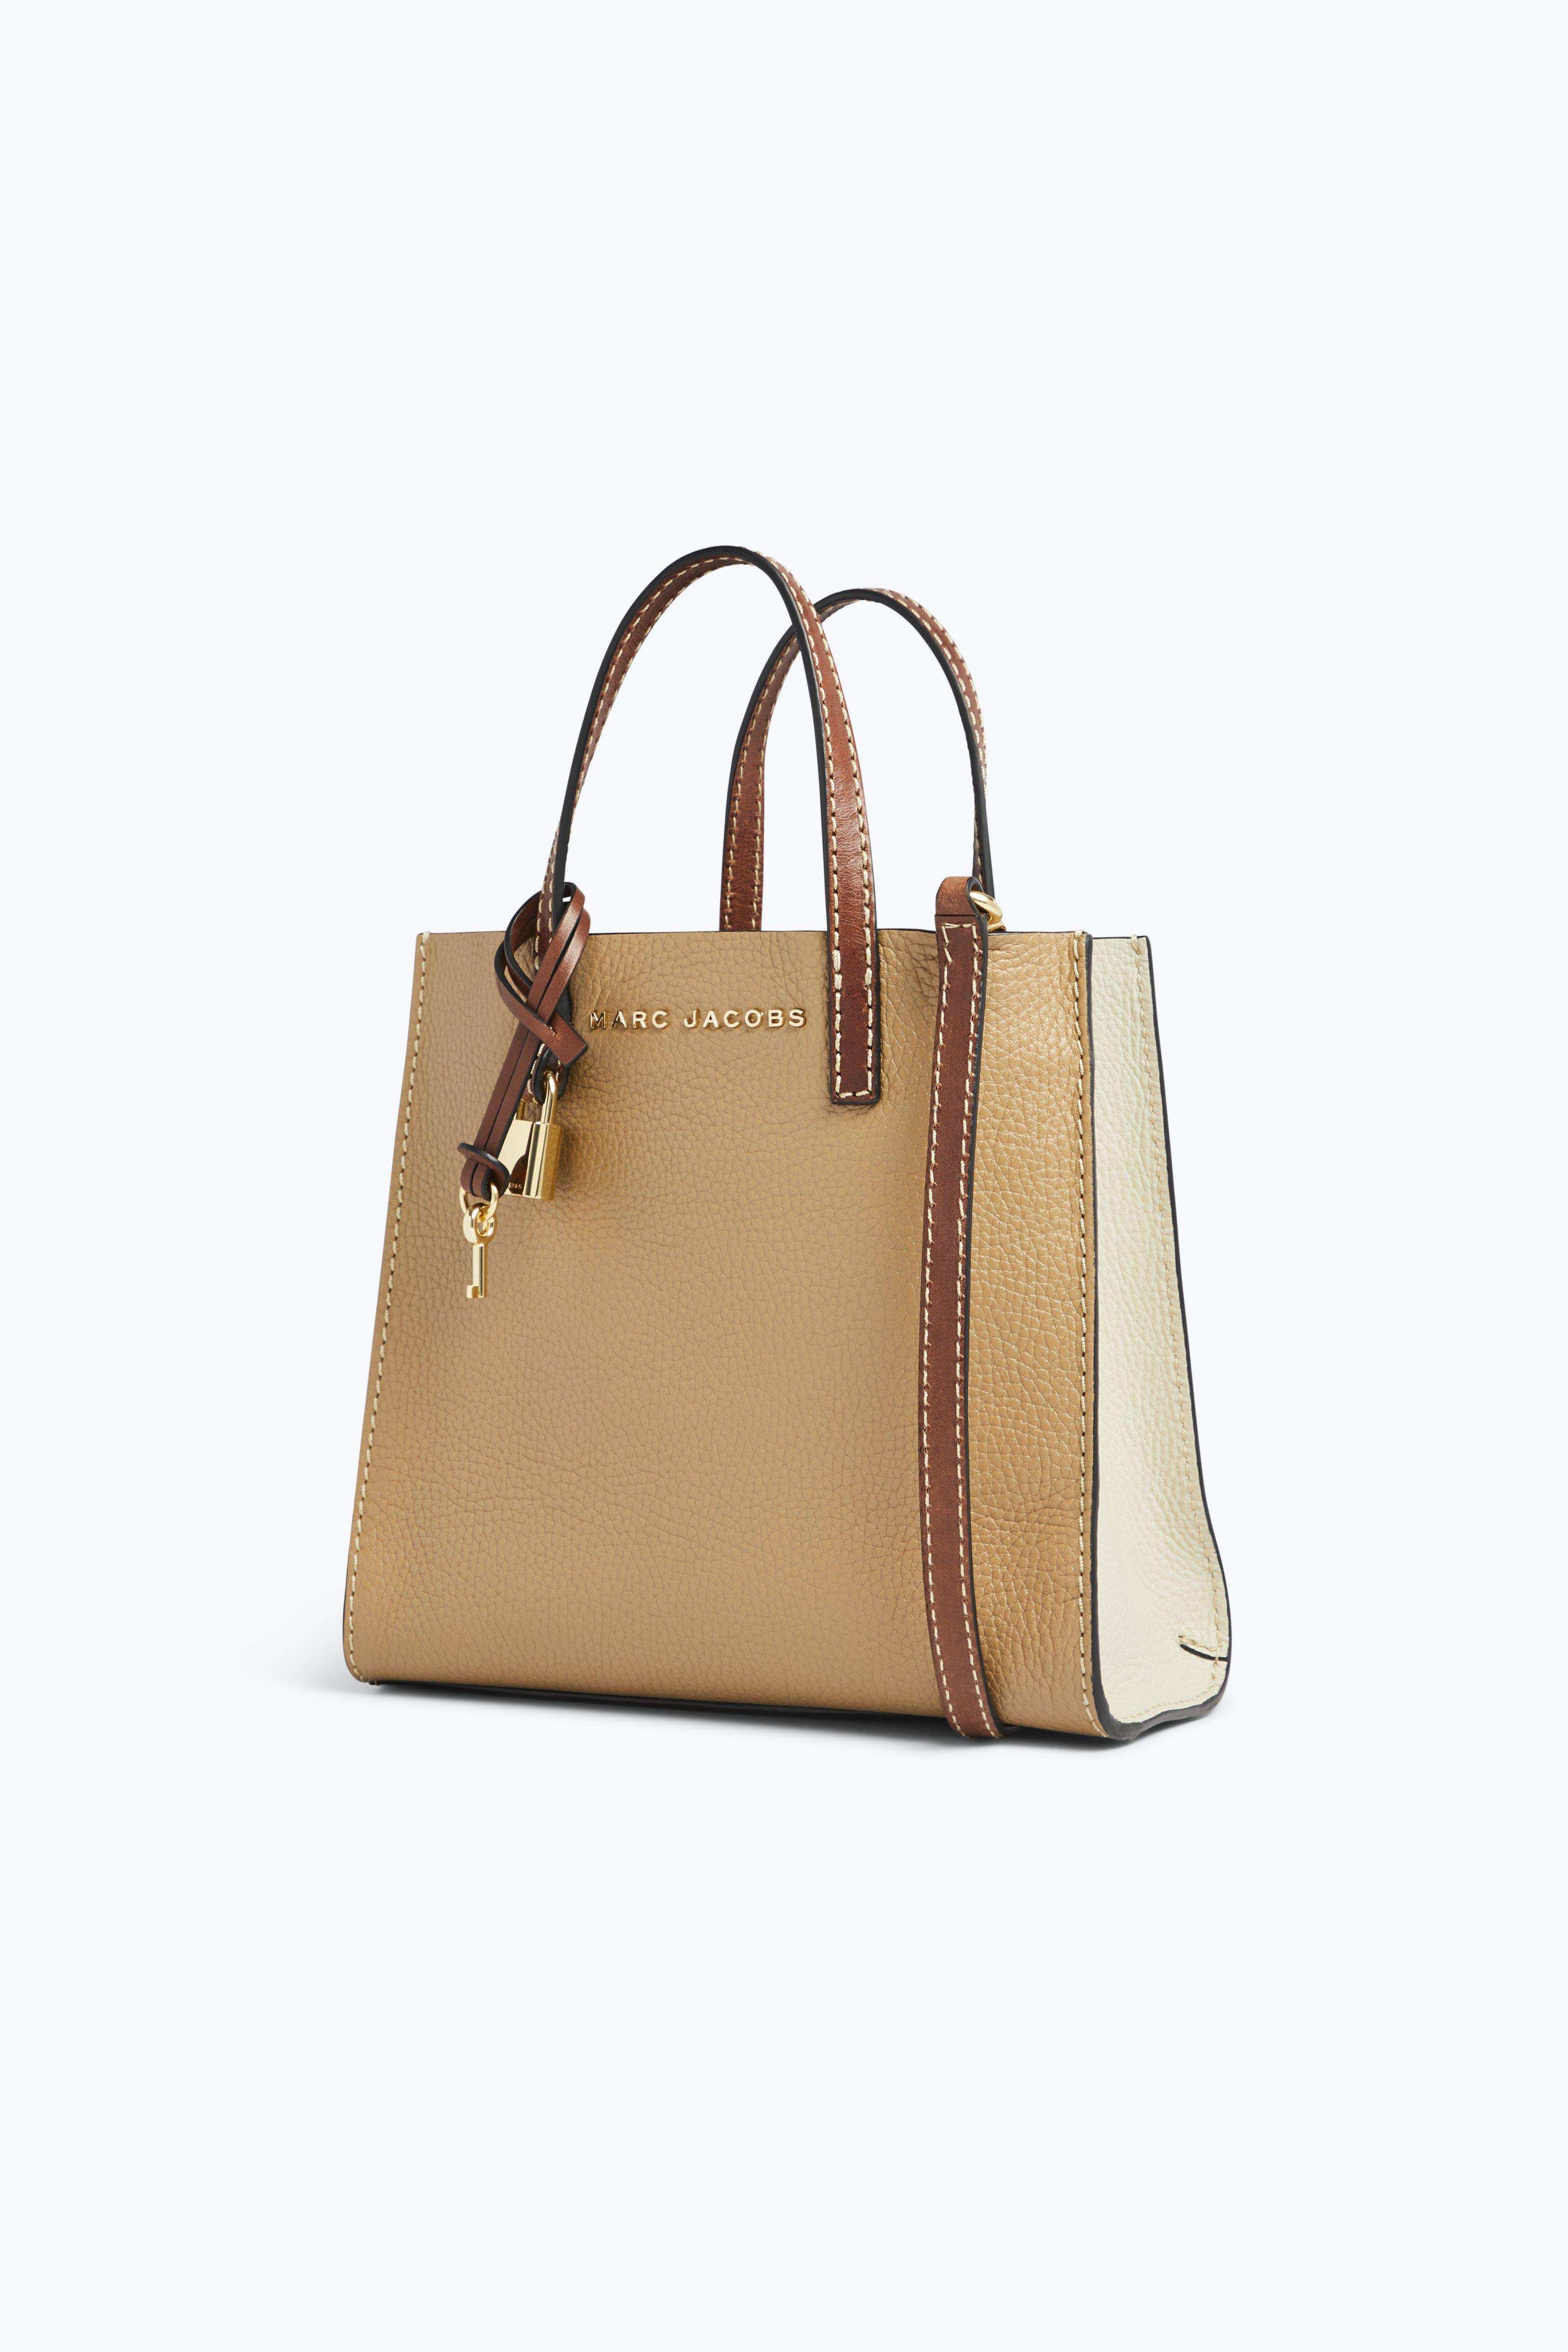 65e4766510e Marc Jacobs The Colorblock Mini Grind Bag in Natural - Lyst